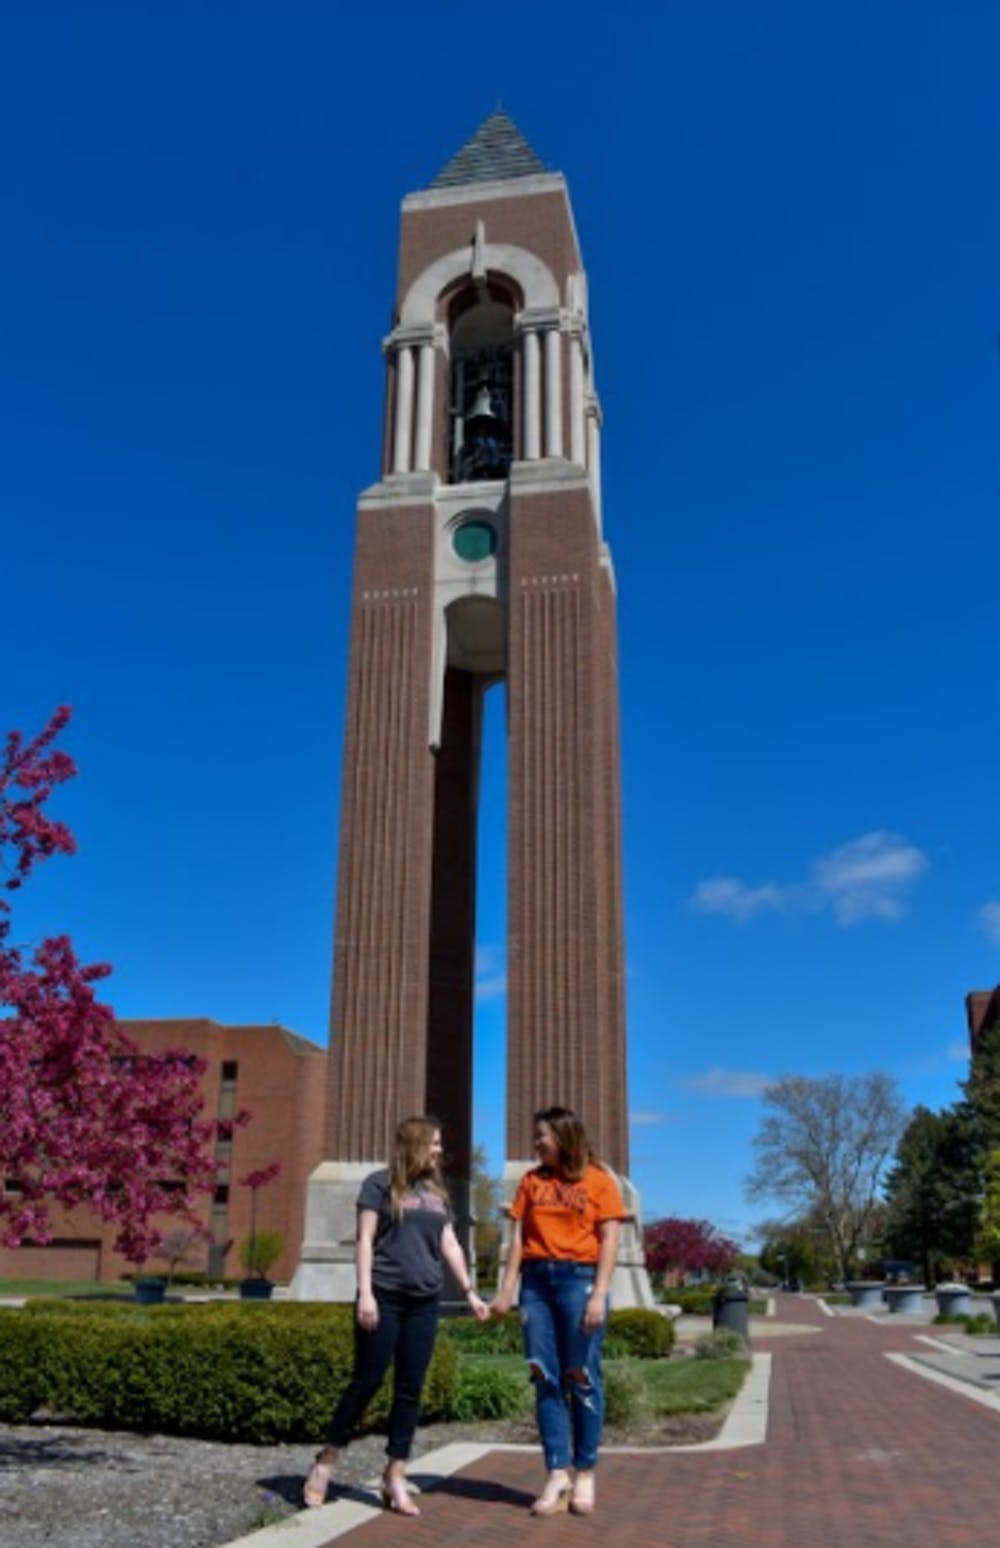 <p>Maddy Hamp and Kelsey Friis pose in front of Shafer Tower on McKinley Ave. Hamp and Friis have been friends since their freshman year at Ball State. <strong>Maddy Hamp, Photo Provided</strong></p>